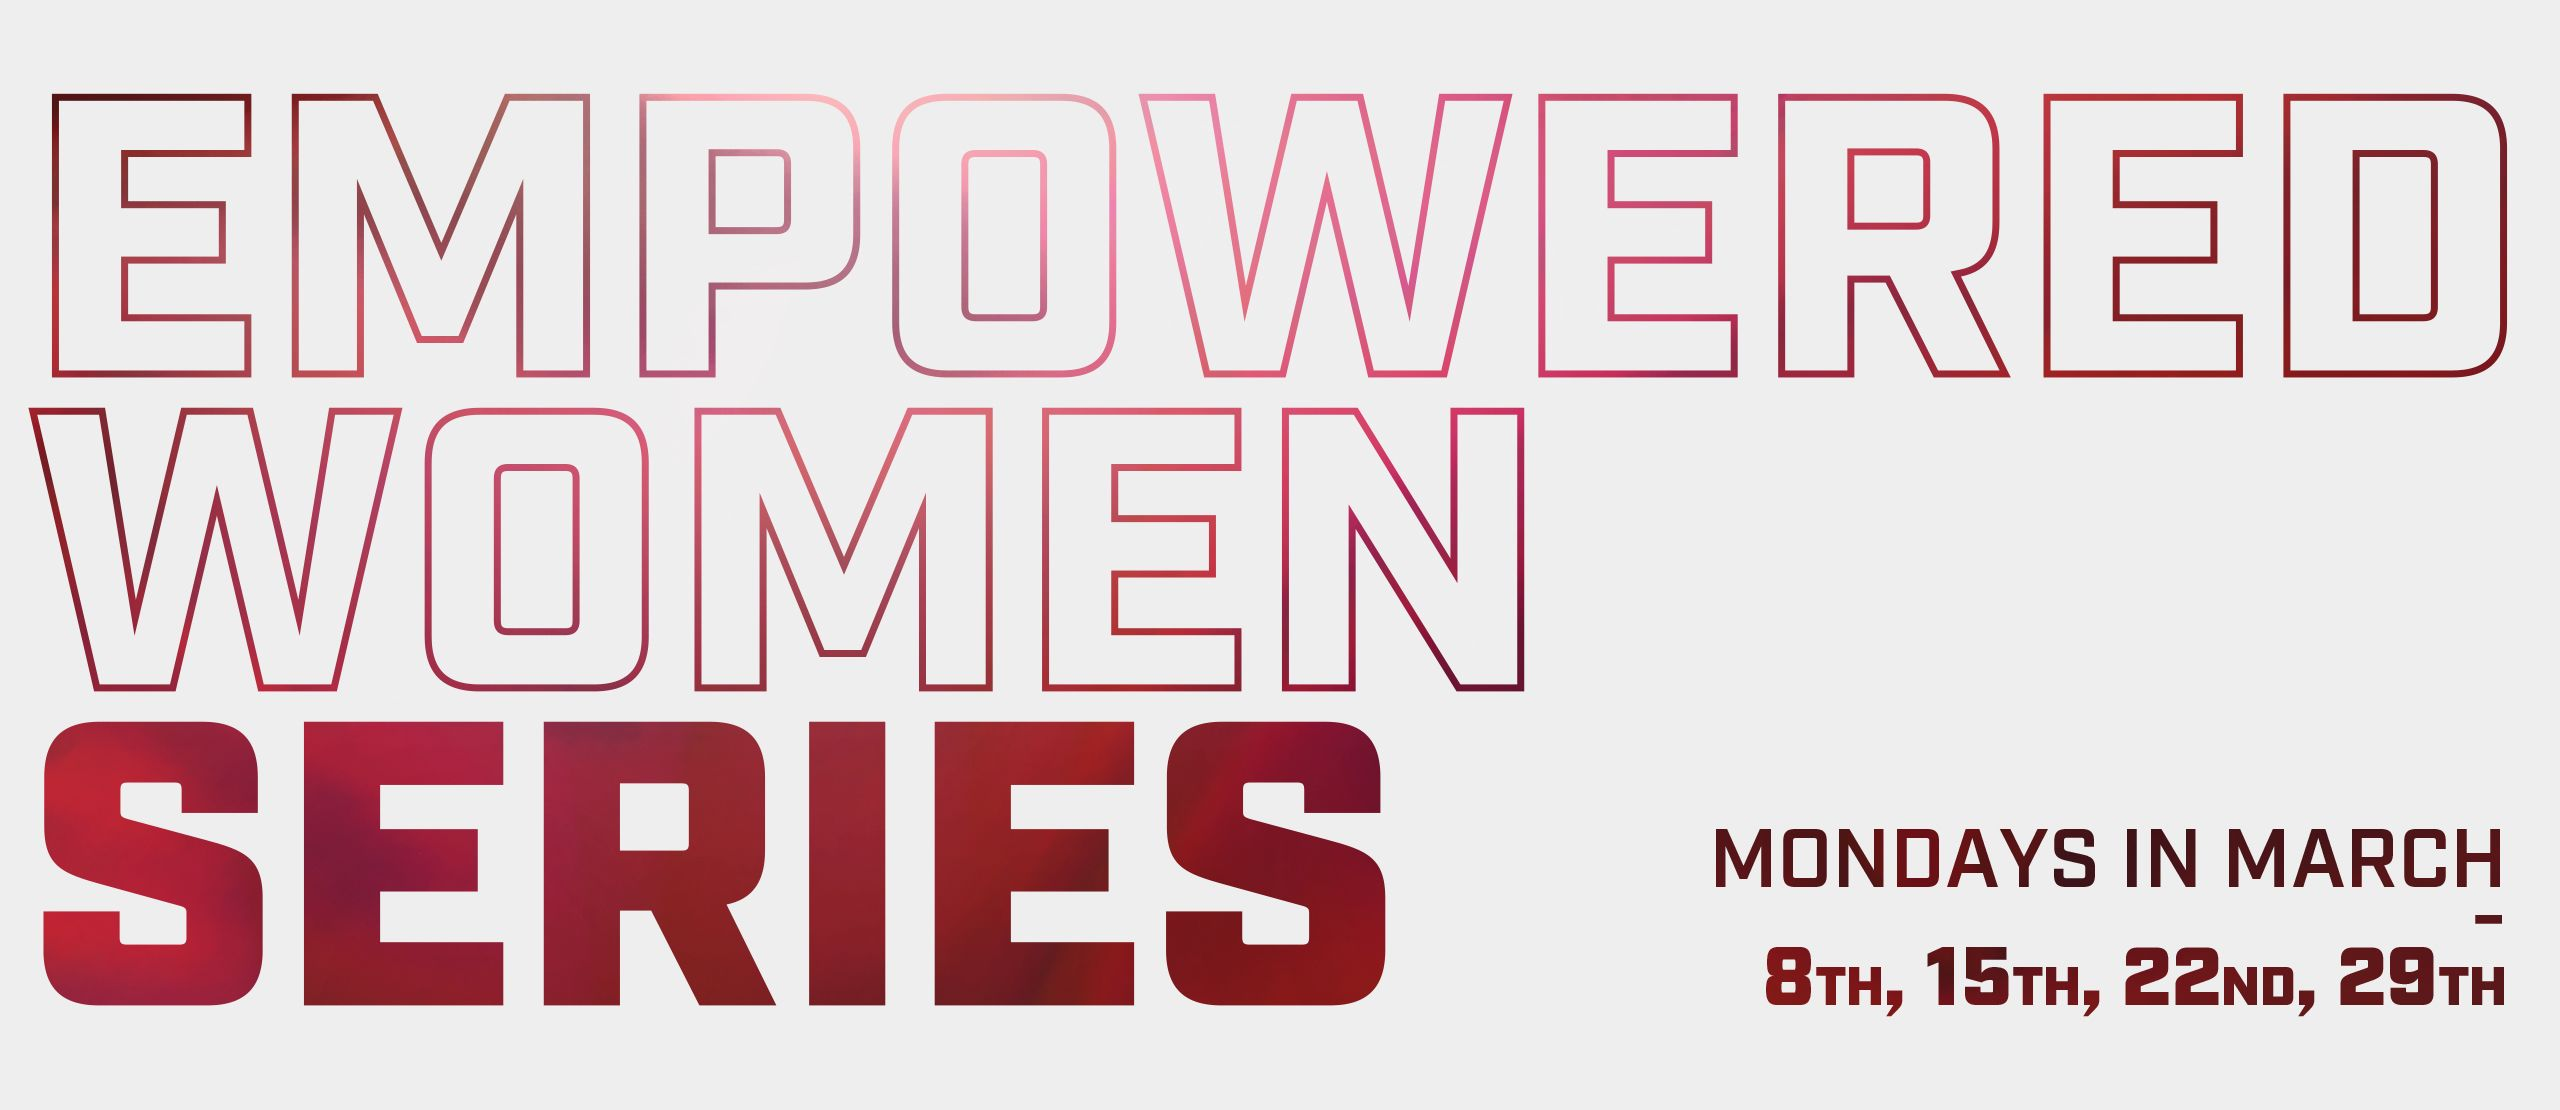 WOW looks to empower and connect women throughout the month of March with motivational speakers and workouts to get mentally and physically strong TOGETHER!  Our priority is to engage our large female fanbase in meaningful events.  We are committed to strengthening our bond as a community!